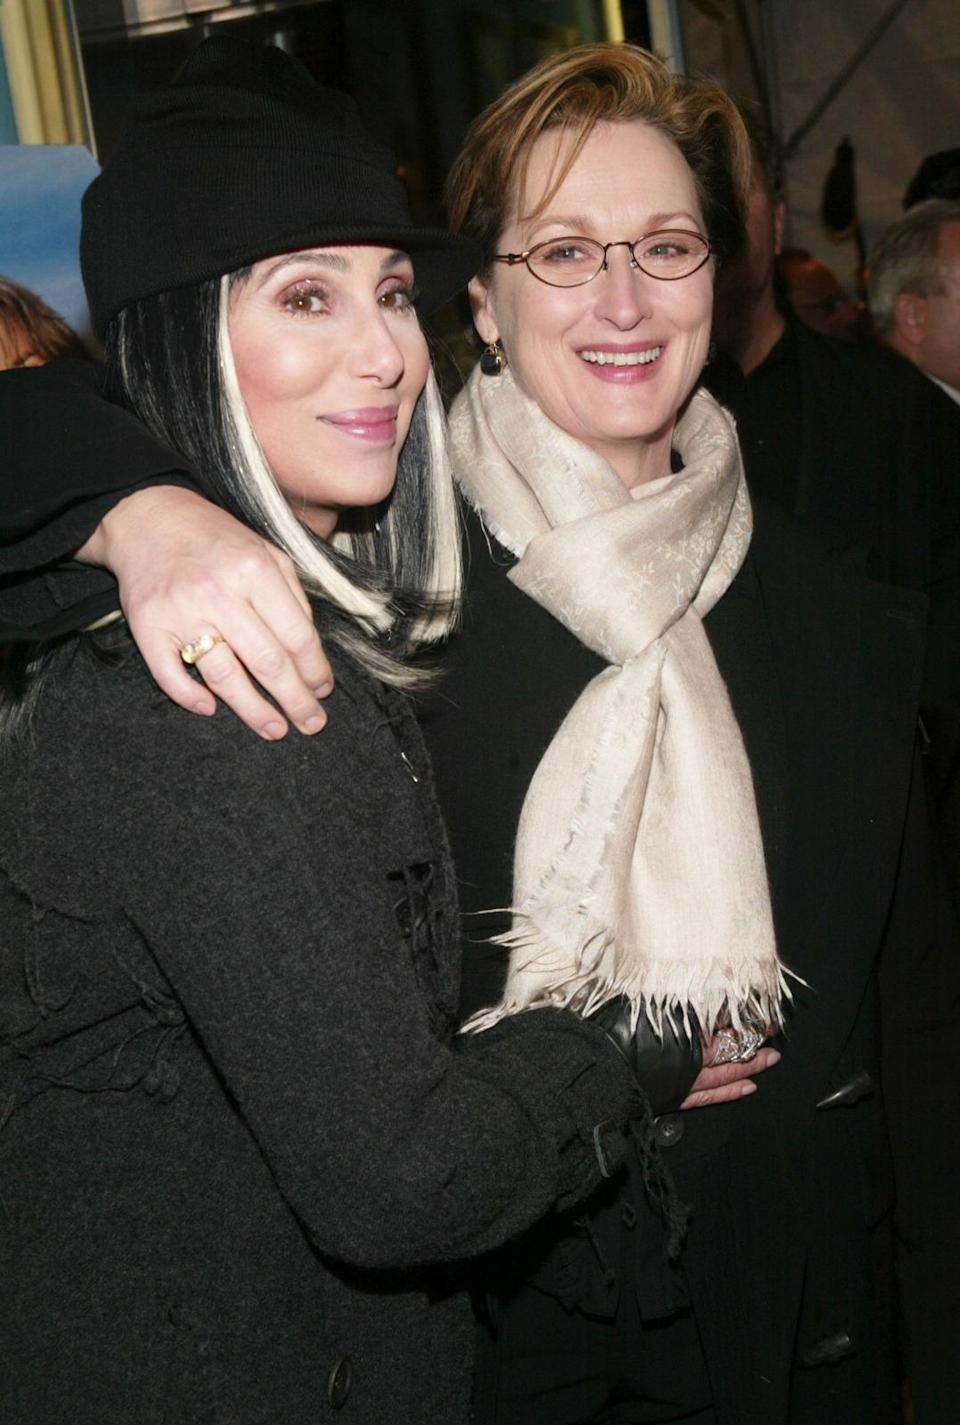 Cher and Meryl starred in 1983 thriller Silkwood.